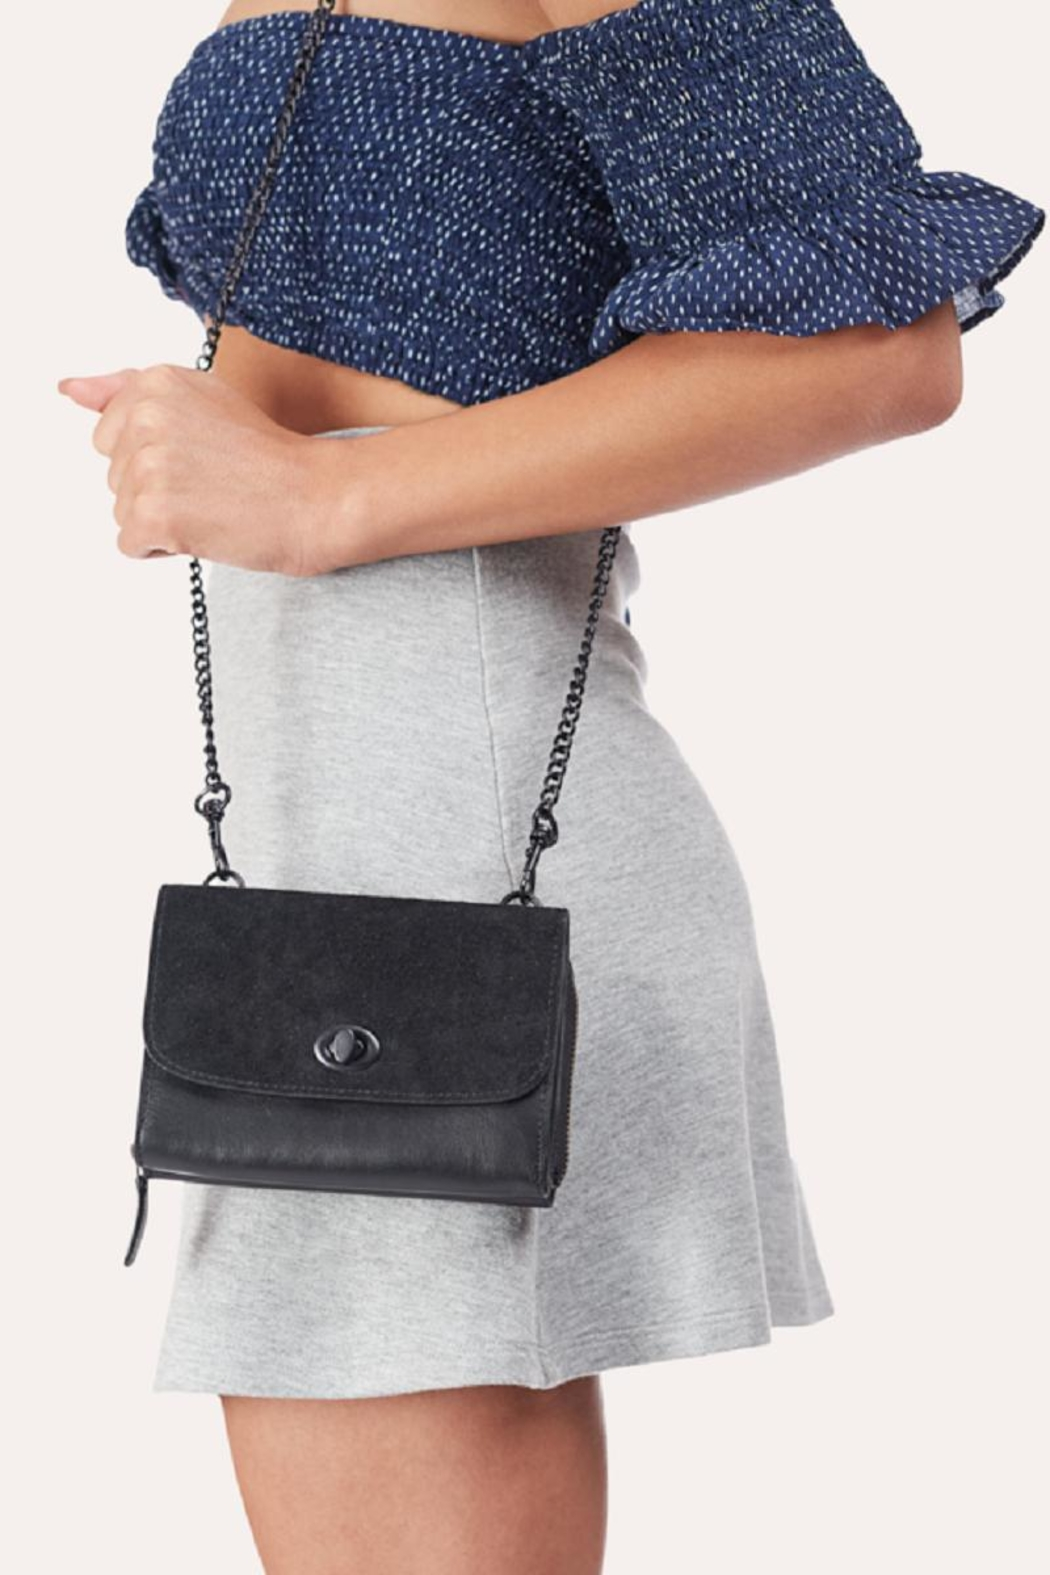 Kiko Leather Black Leather Crossbody - Main Image